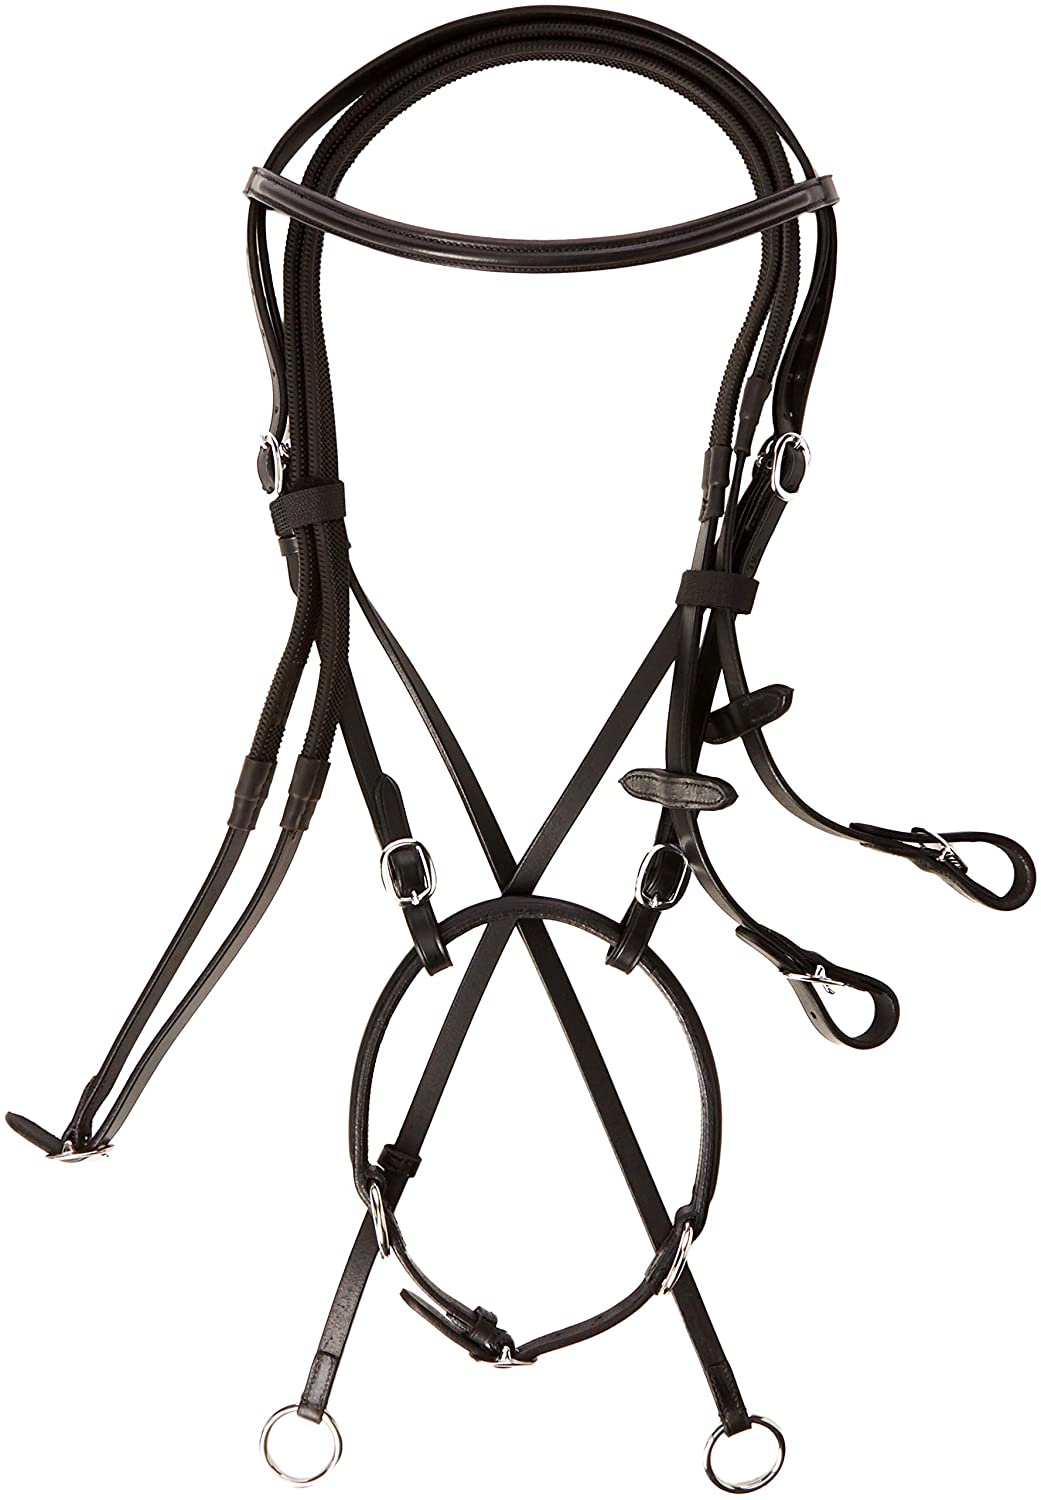 Cwell Equine New ** Cross Over ** Bitless Leather Bridle with web grip reins BLACK F/C/P